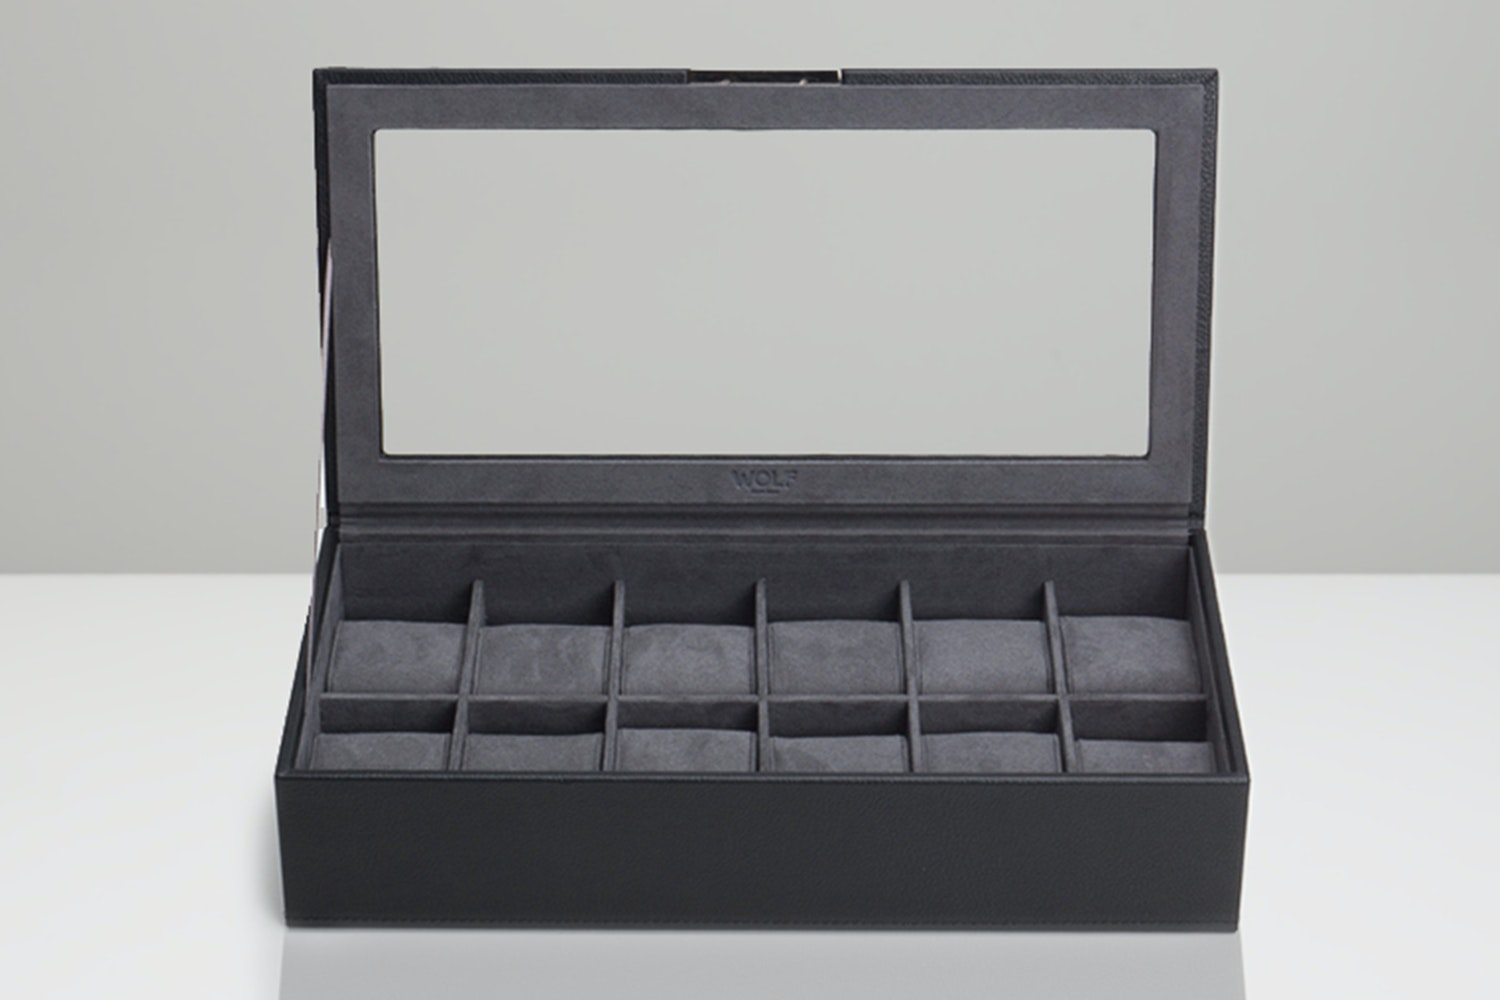 12-Piece Tray with Lid, Black (+ $5)